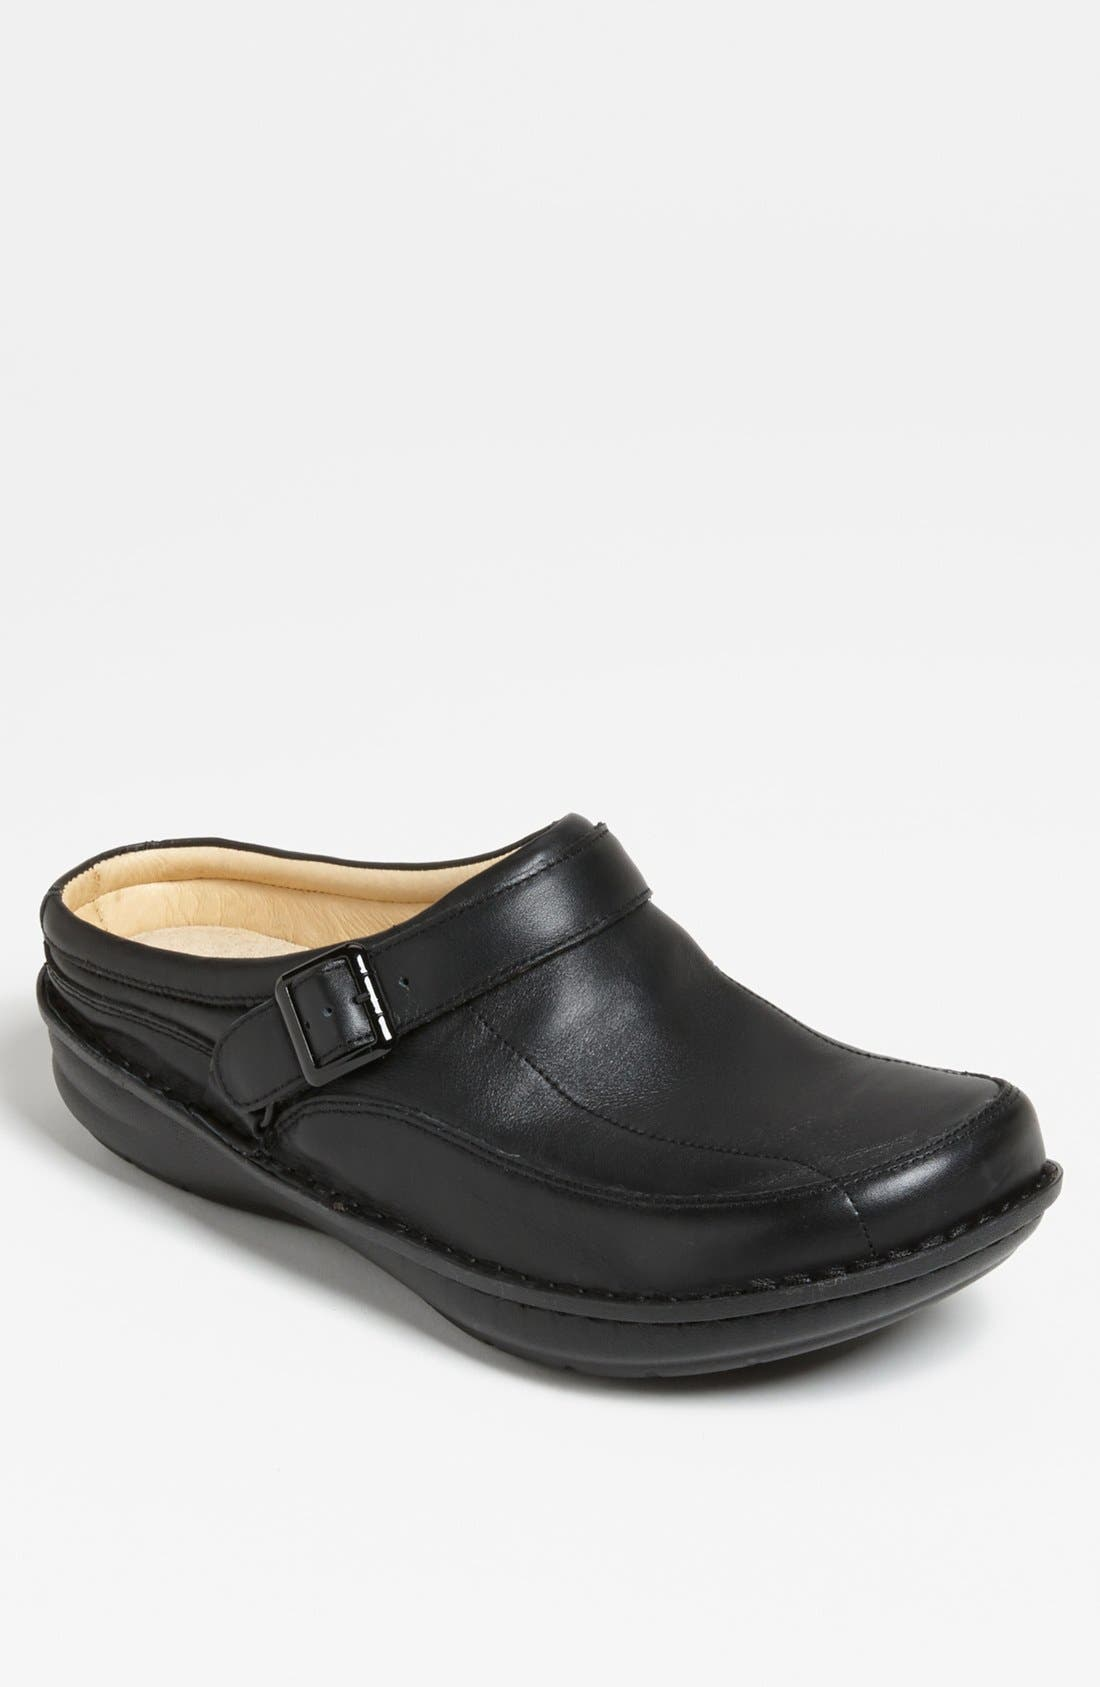 Alternate Image 1 Selected - Alegria 'Chairman' Slip-On (Men)